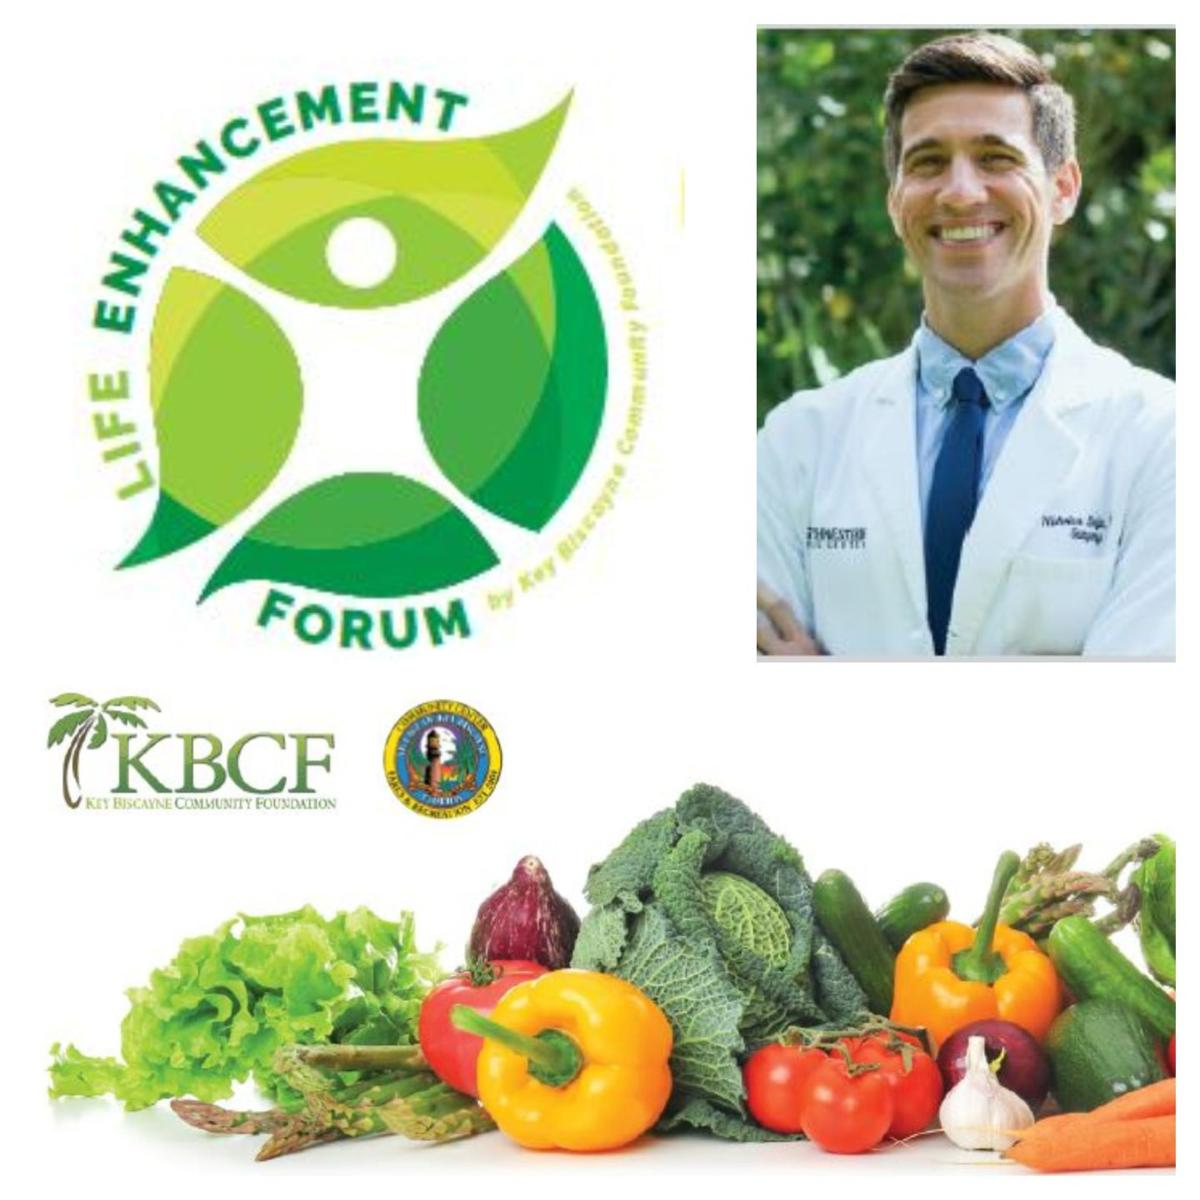 Eating to Prevent Cancer - Sept 26 at KBCC - presented by KBC